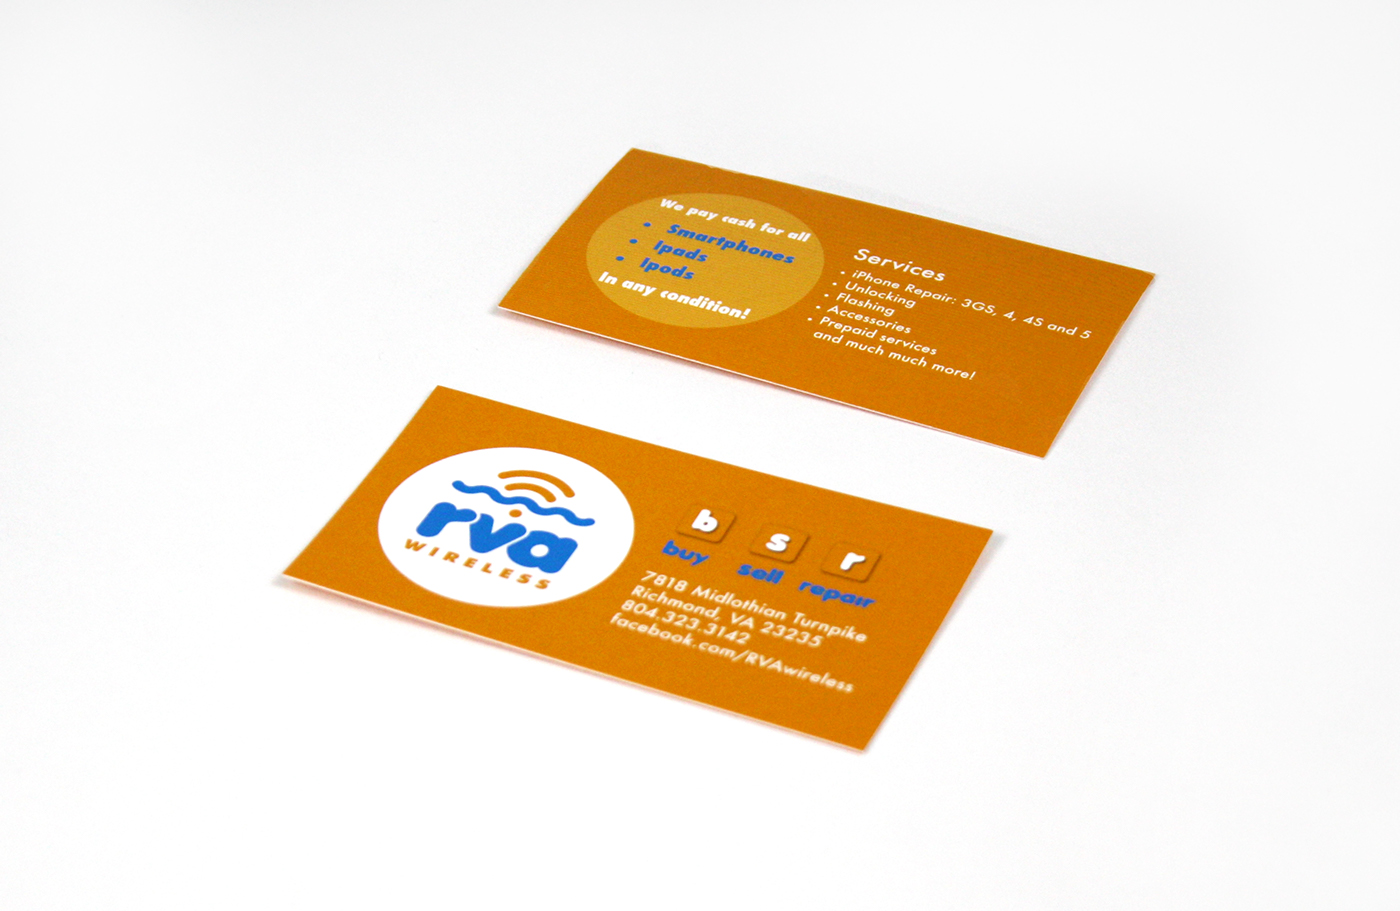 Rva wireless business cards on behance for Business cards richmond va